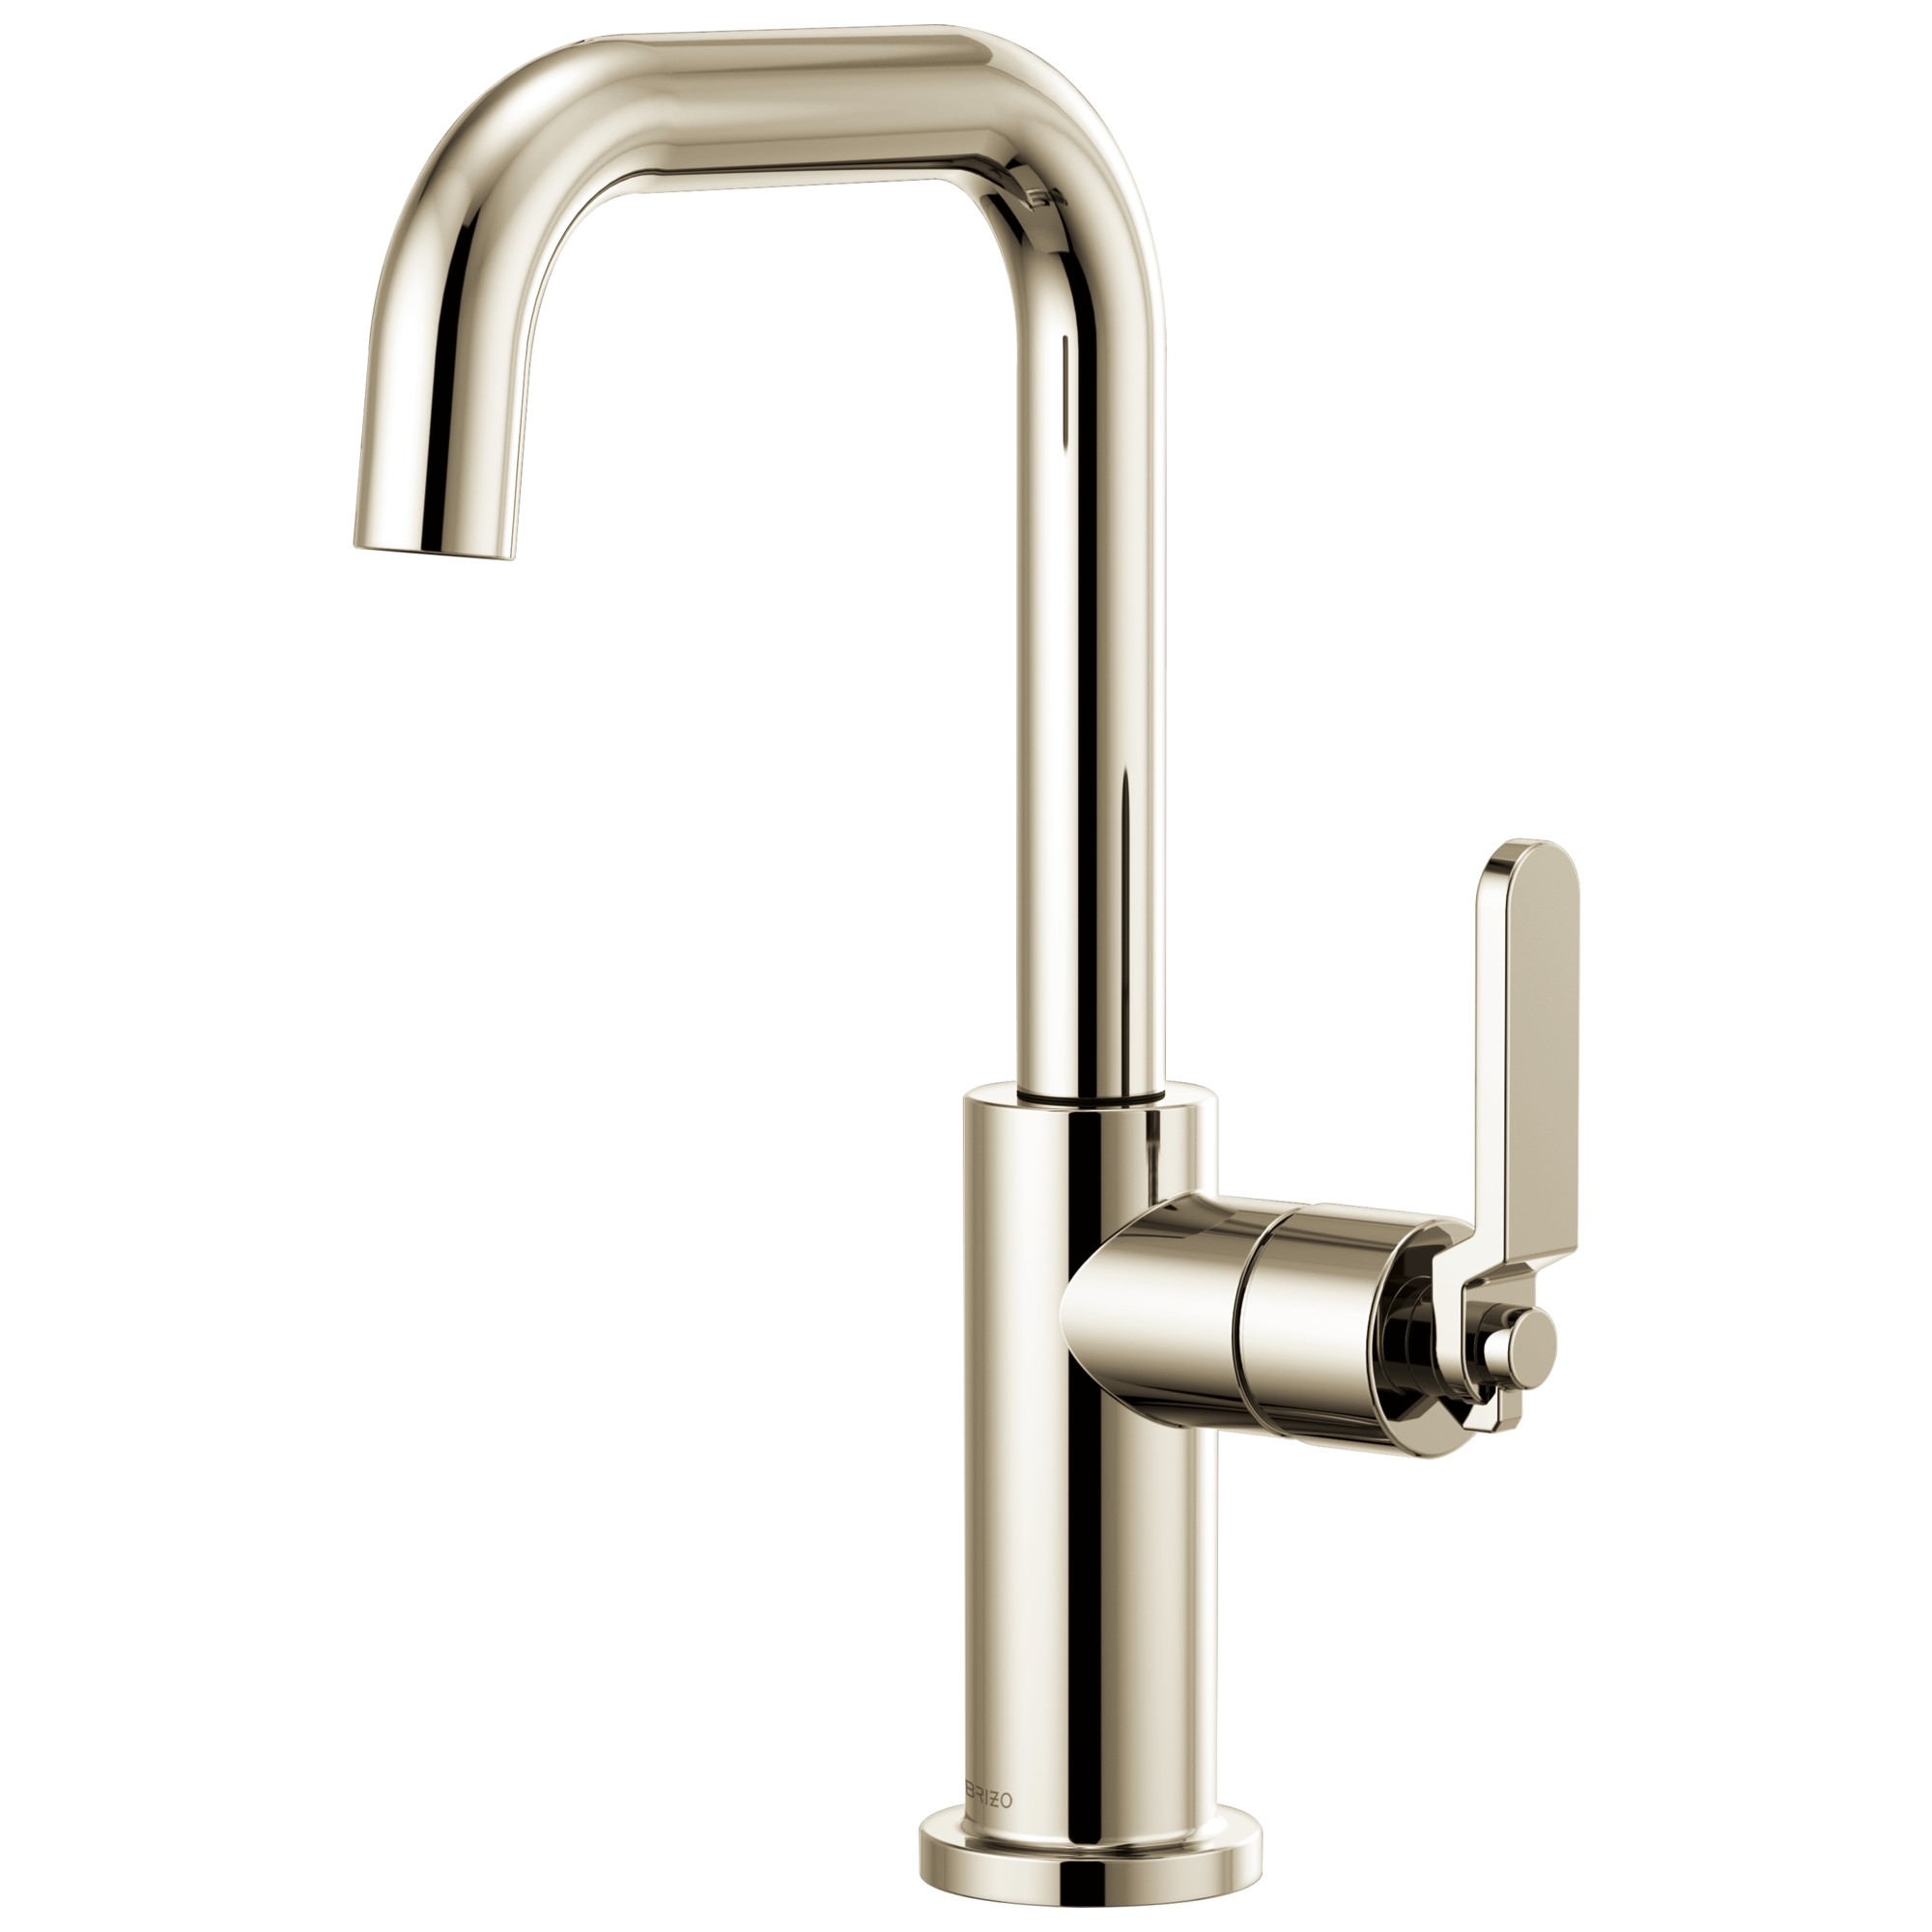 Brizo 61054LF-PN Litze Bar Faucet with Square Spout and Industrial Handle - Polished Nickel